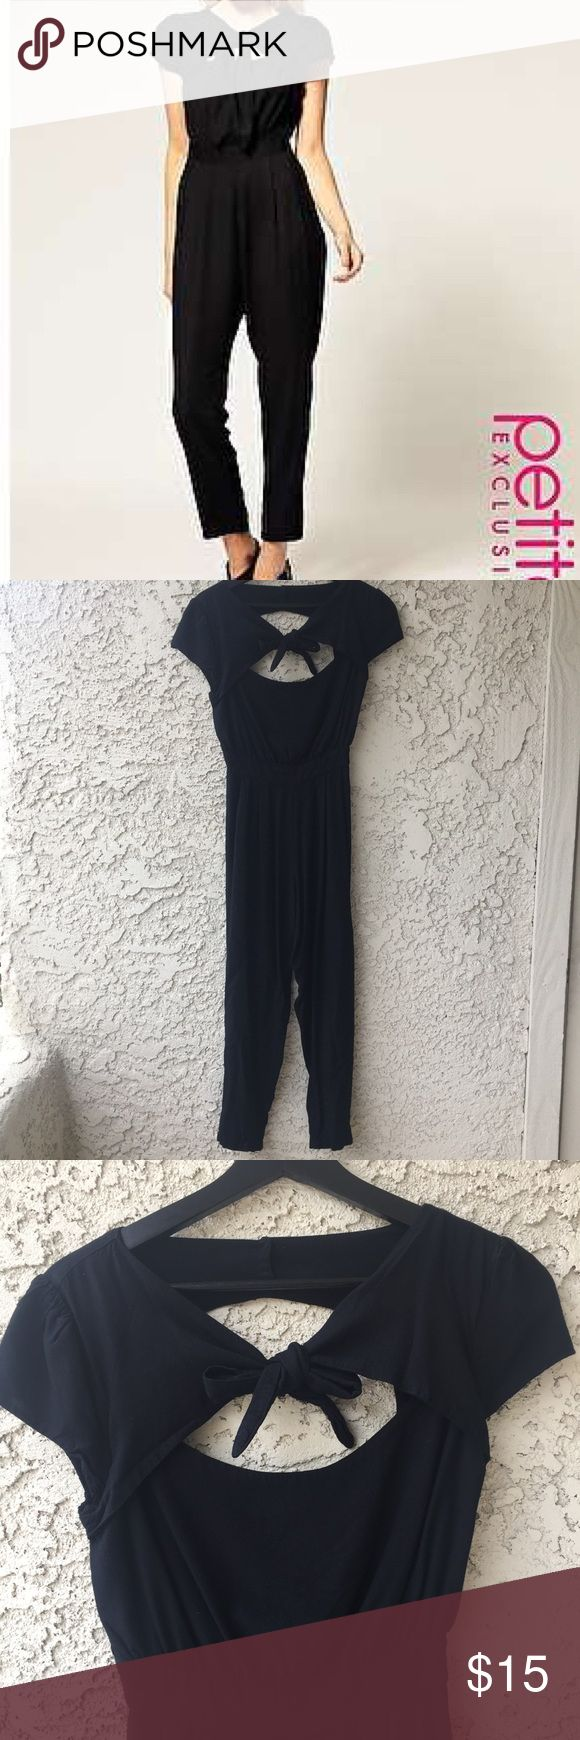 Asos Petite Jumpsuit with Cutout Back Amazing black jumpsuit with cut out back and tie in the front. It reminded me of an outfit from the 1940s. Very soft. The zipper is fully functioning but sticks a little, has been that way since I got it. ASOS Pants Jumpsuits & Rompers